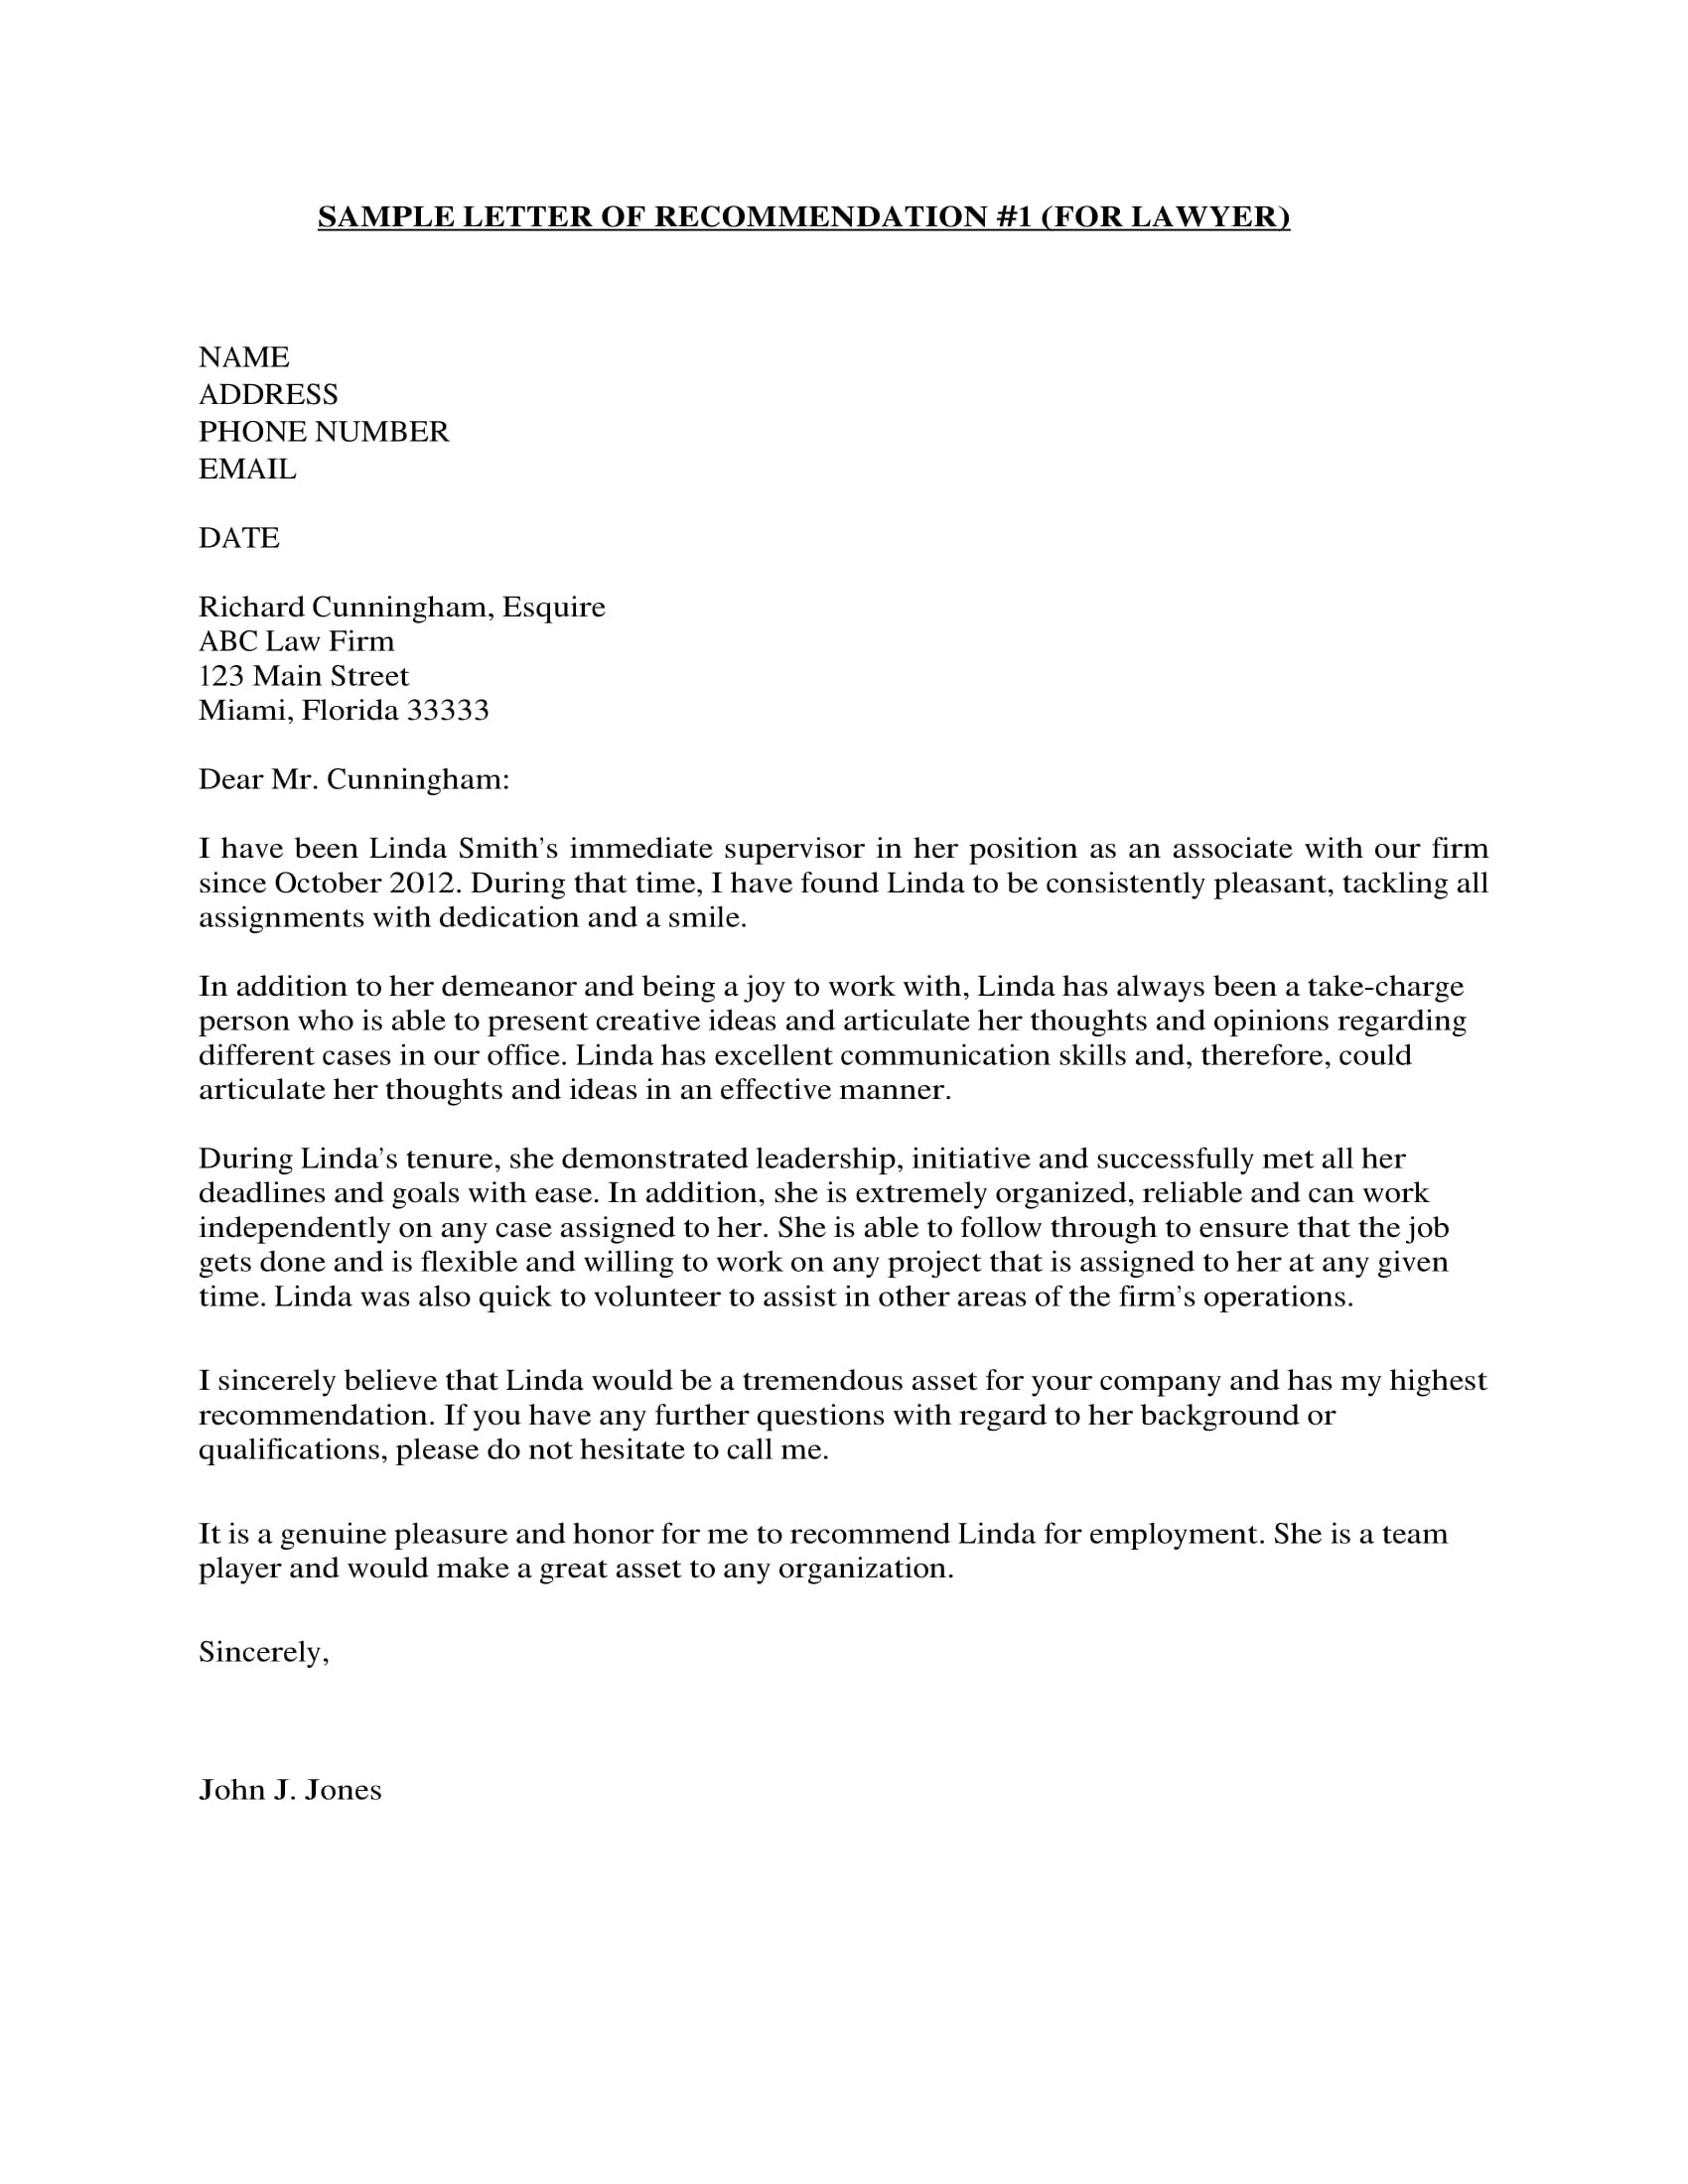 Legal Letter Of Recommendation 10 Business Reference Letter Examples Pdf Examples